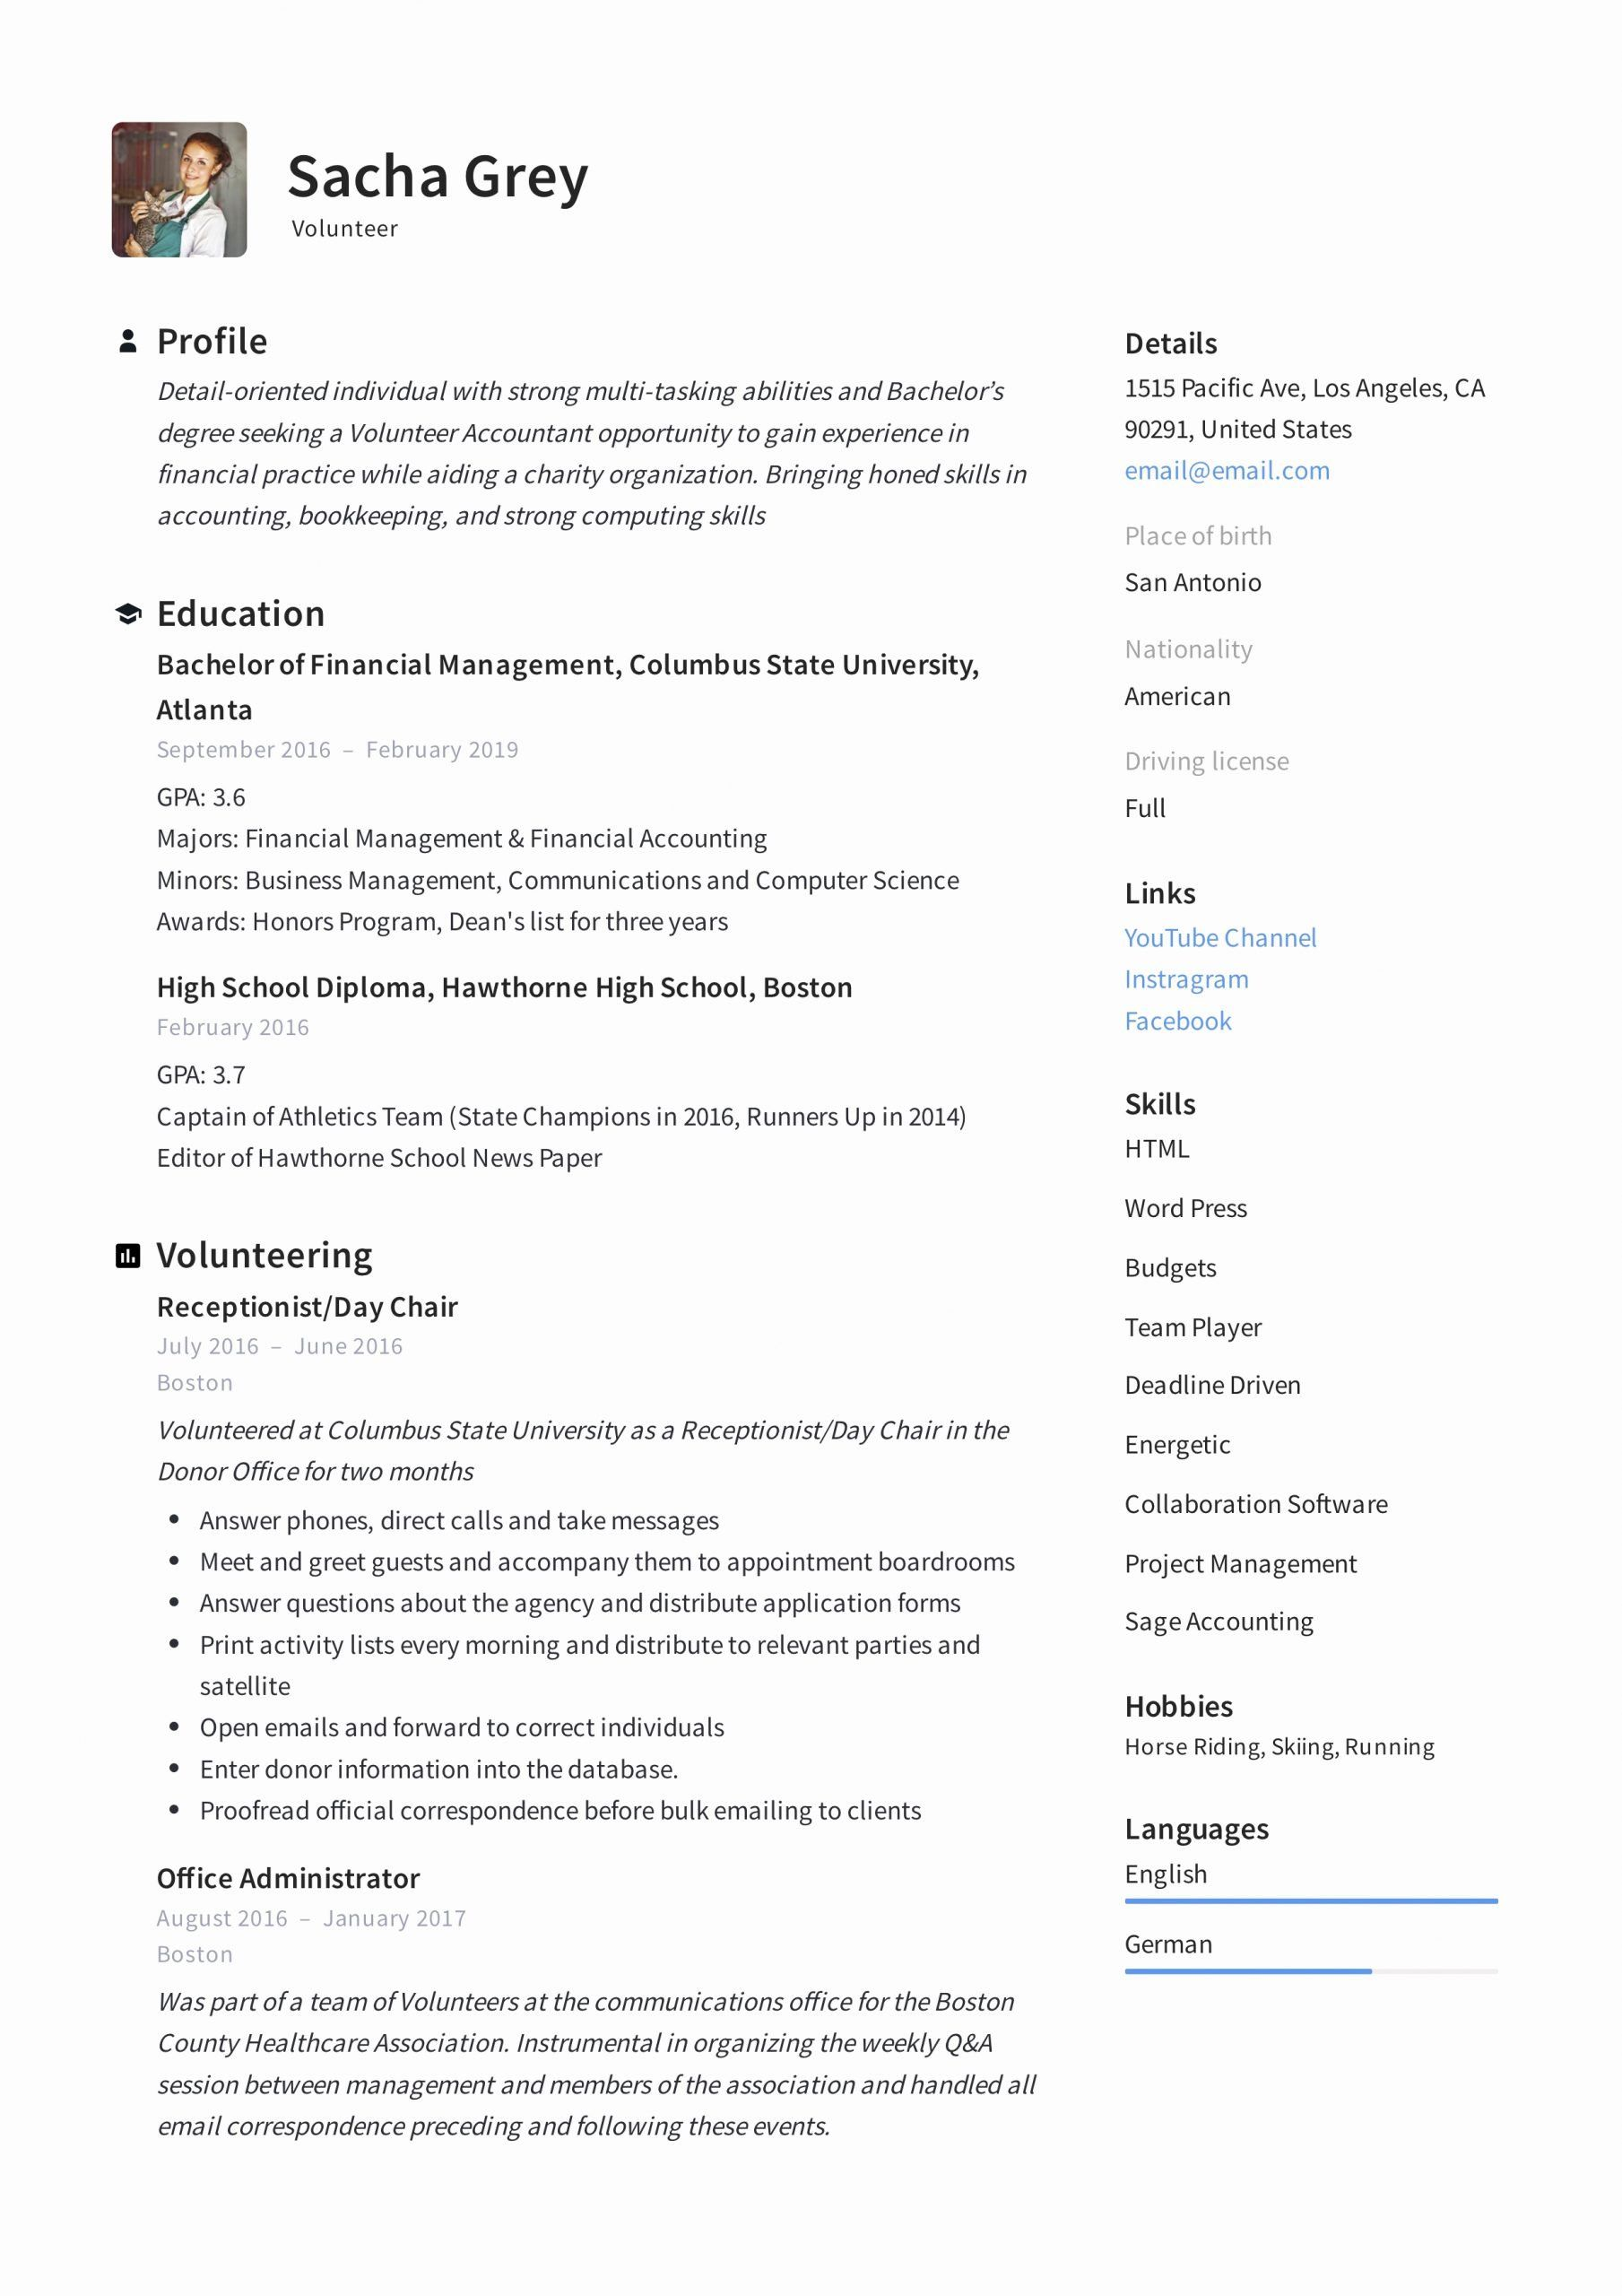 Volunteer Experience Resume Example Unique Volunteer